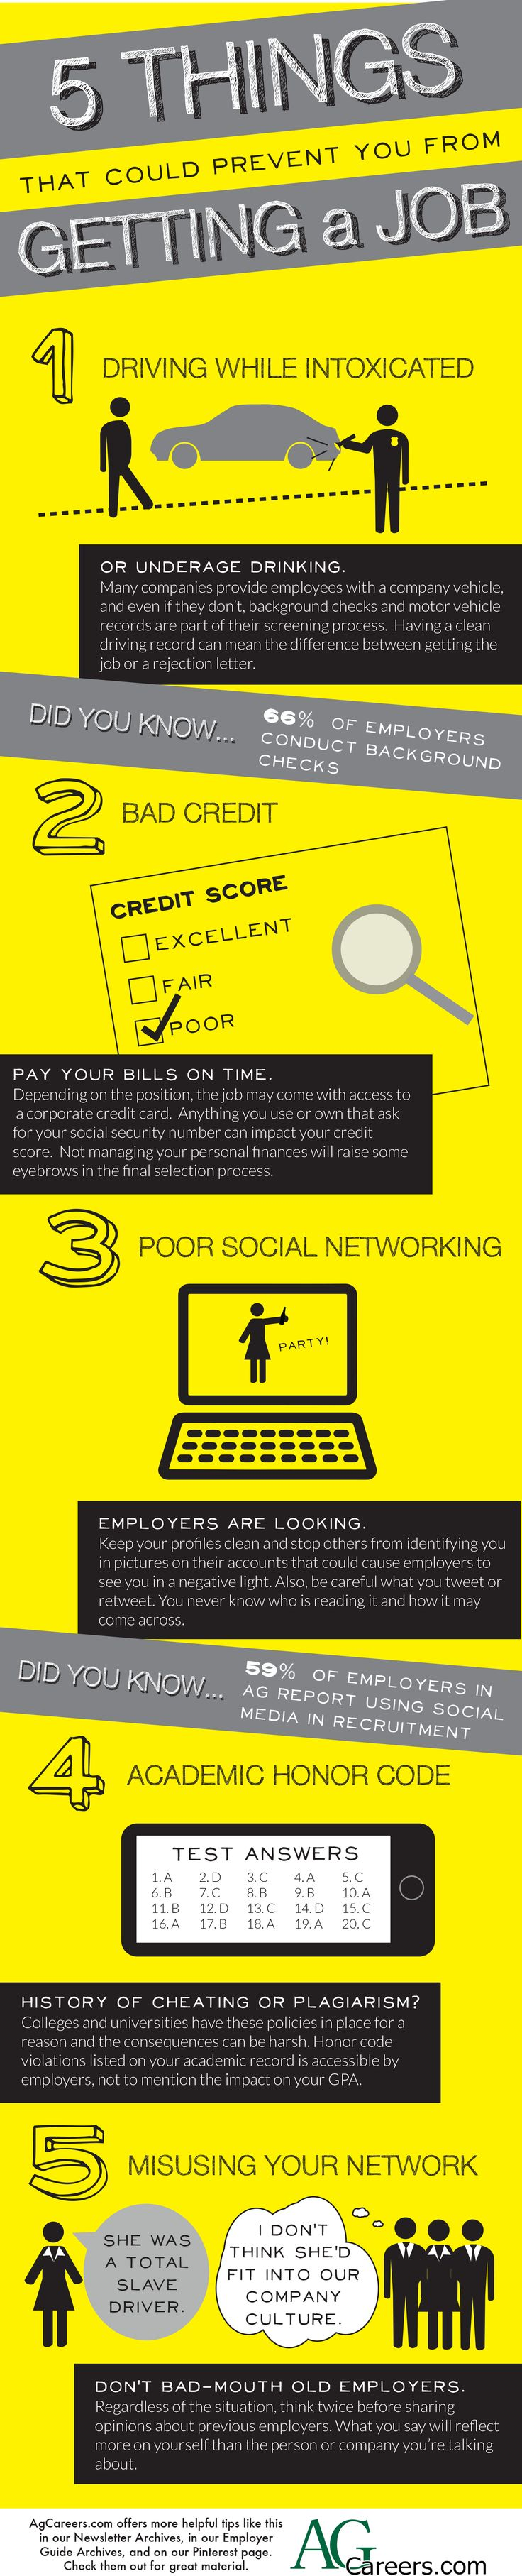 Infographic Title 5 Things that Could Prevent